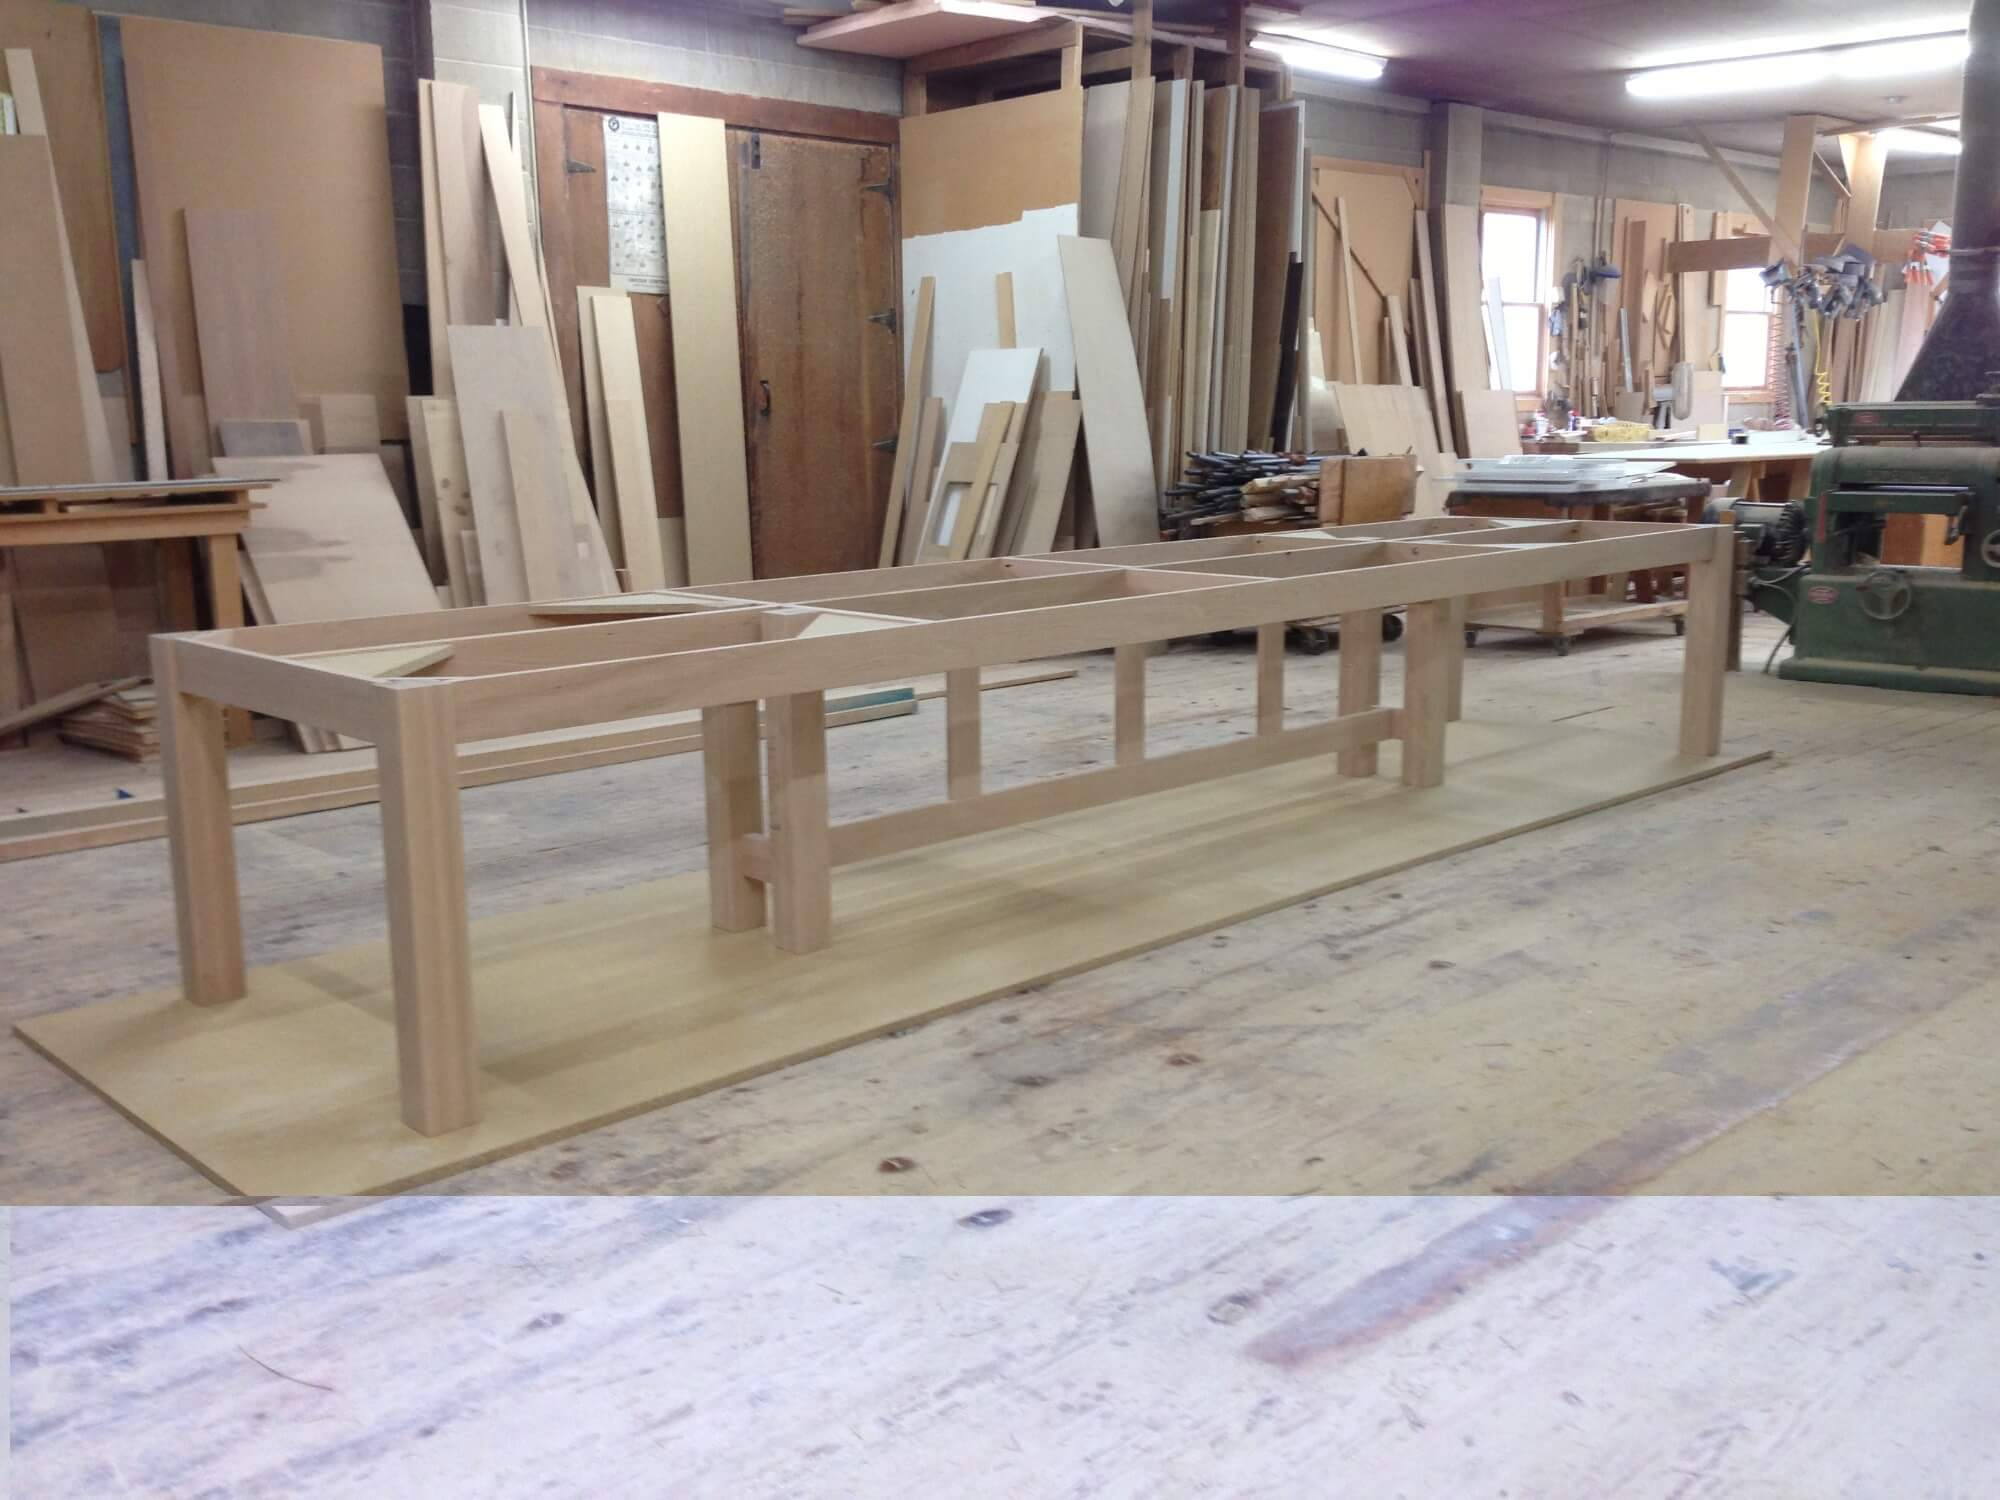 Early Cabinet Frame Construction